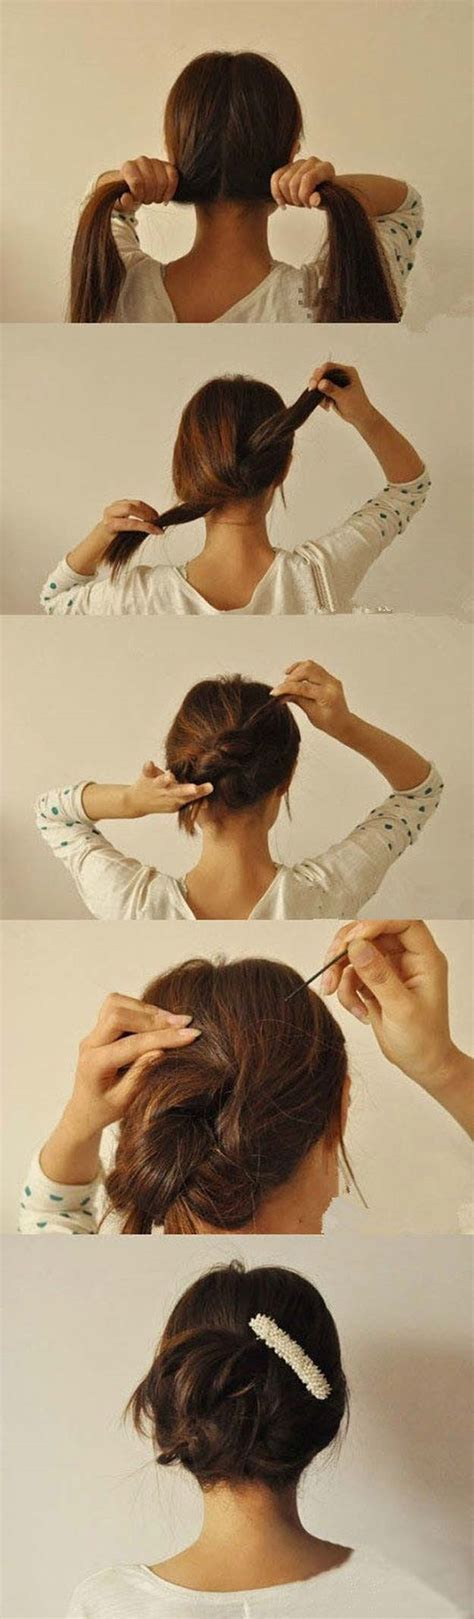 cute diy hairstyles easy 36 best hairstyles for long hair diy projects for teens